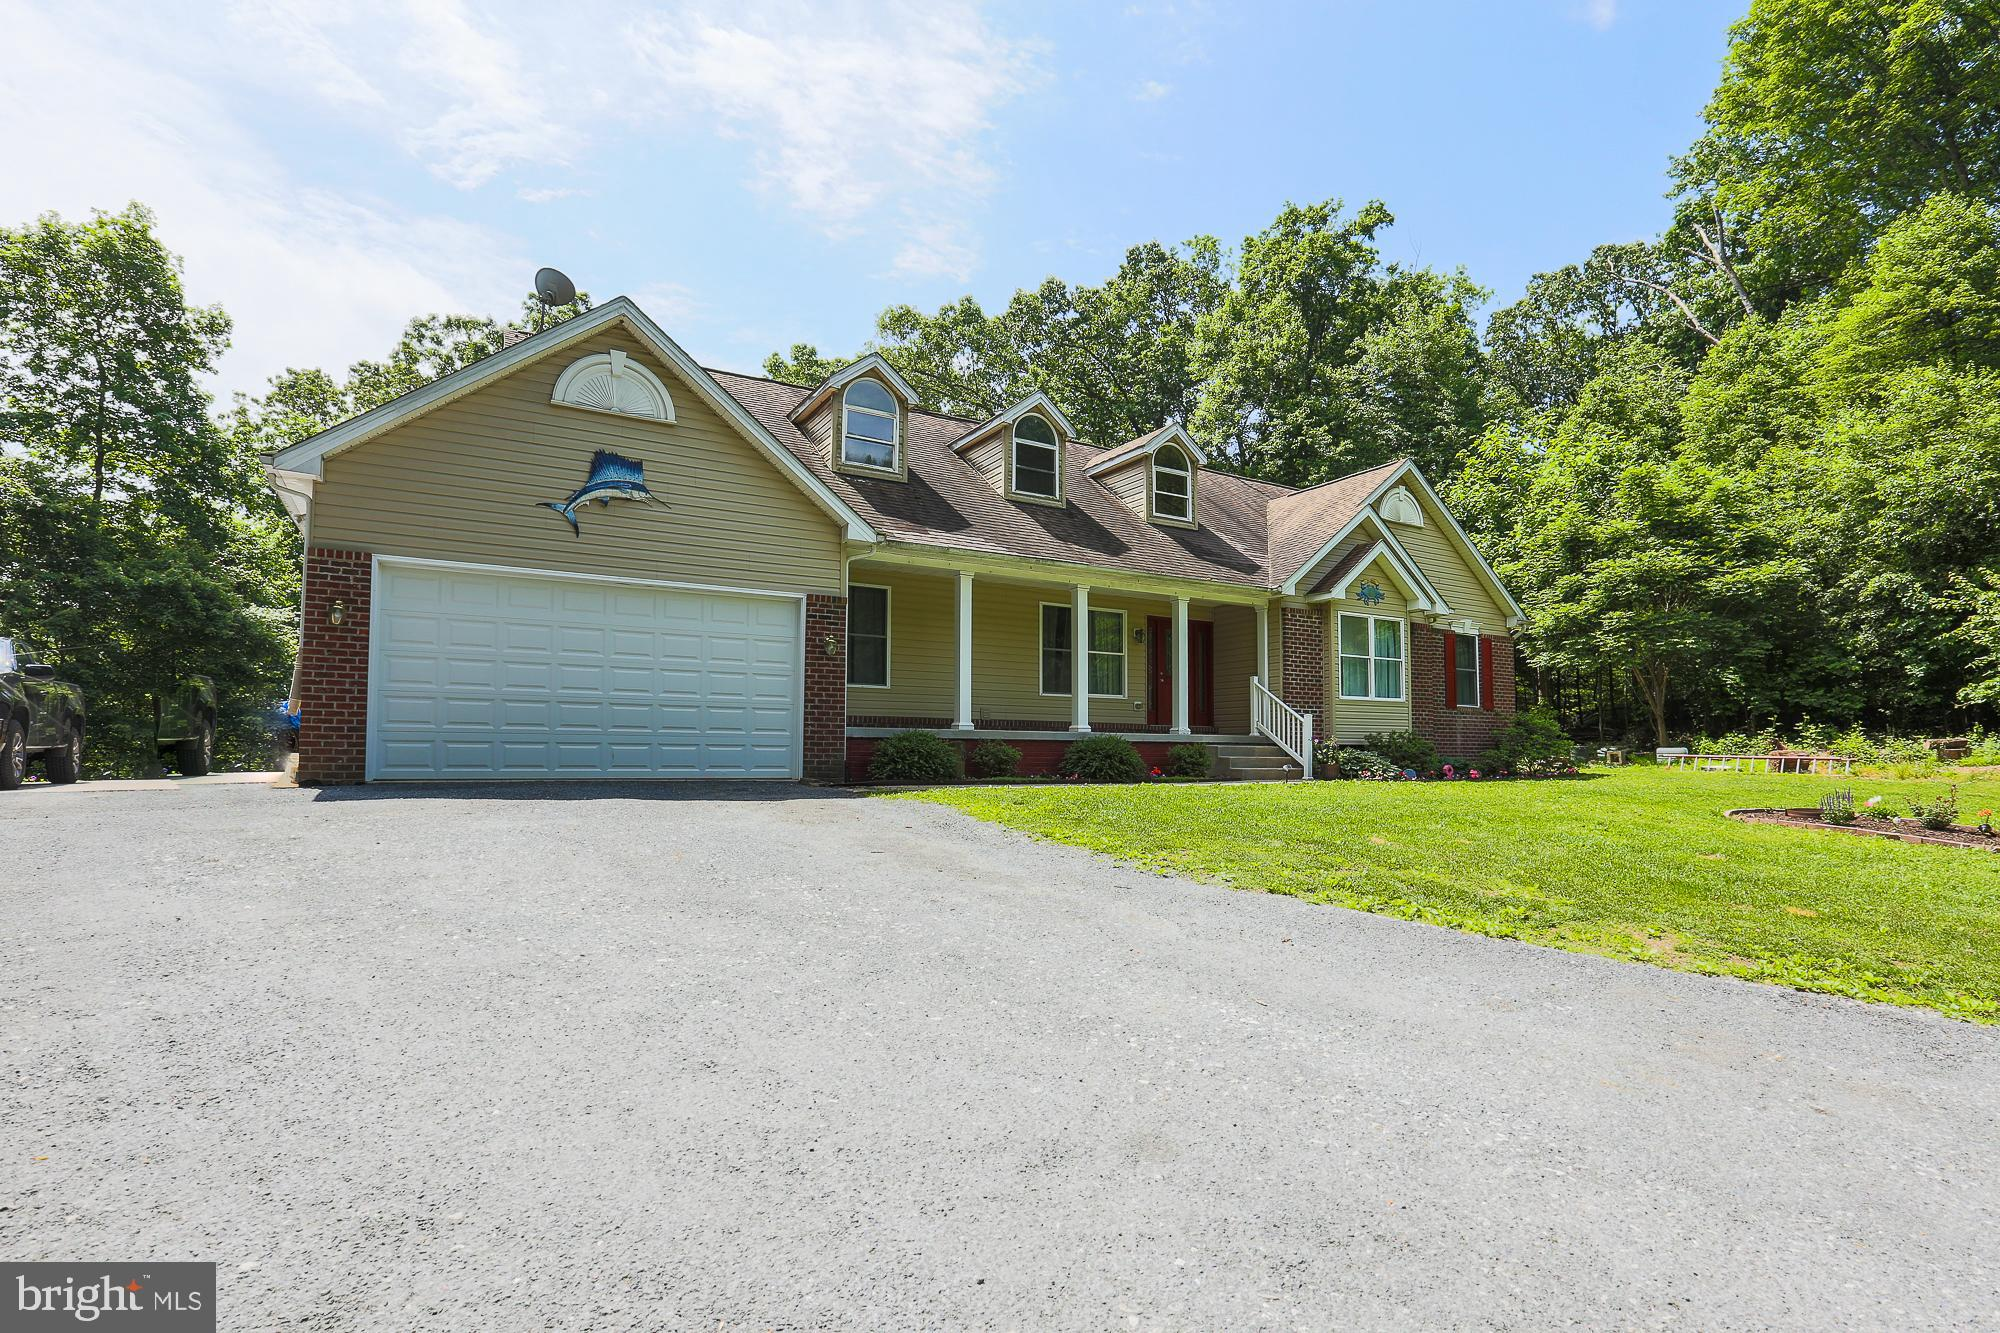 1215 BERNOUDY ROAD, WHITE HALL, MD 21161